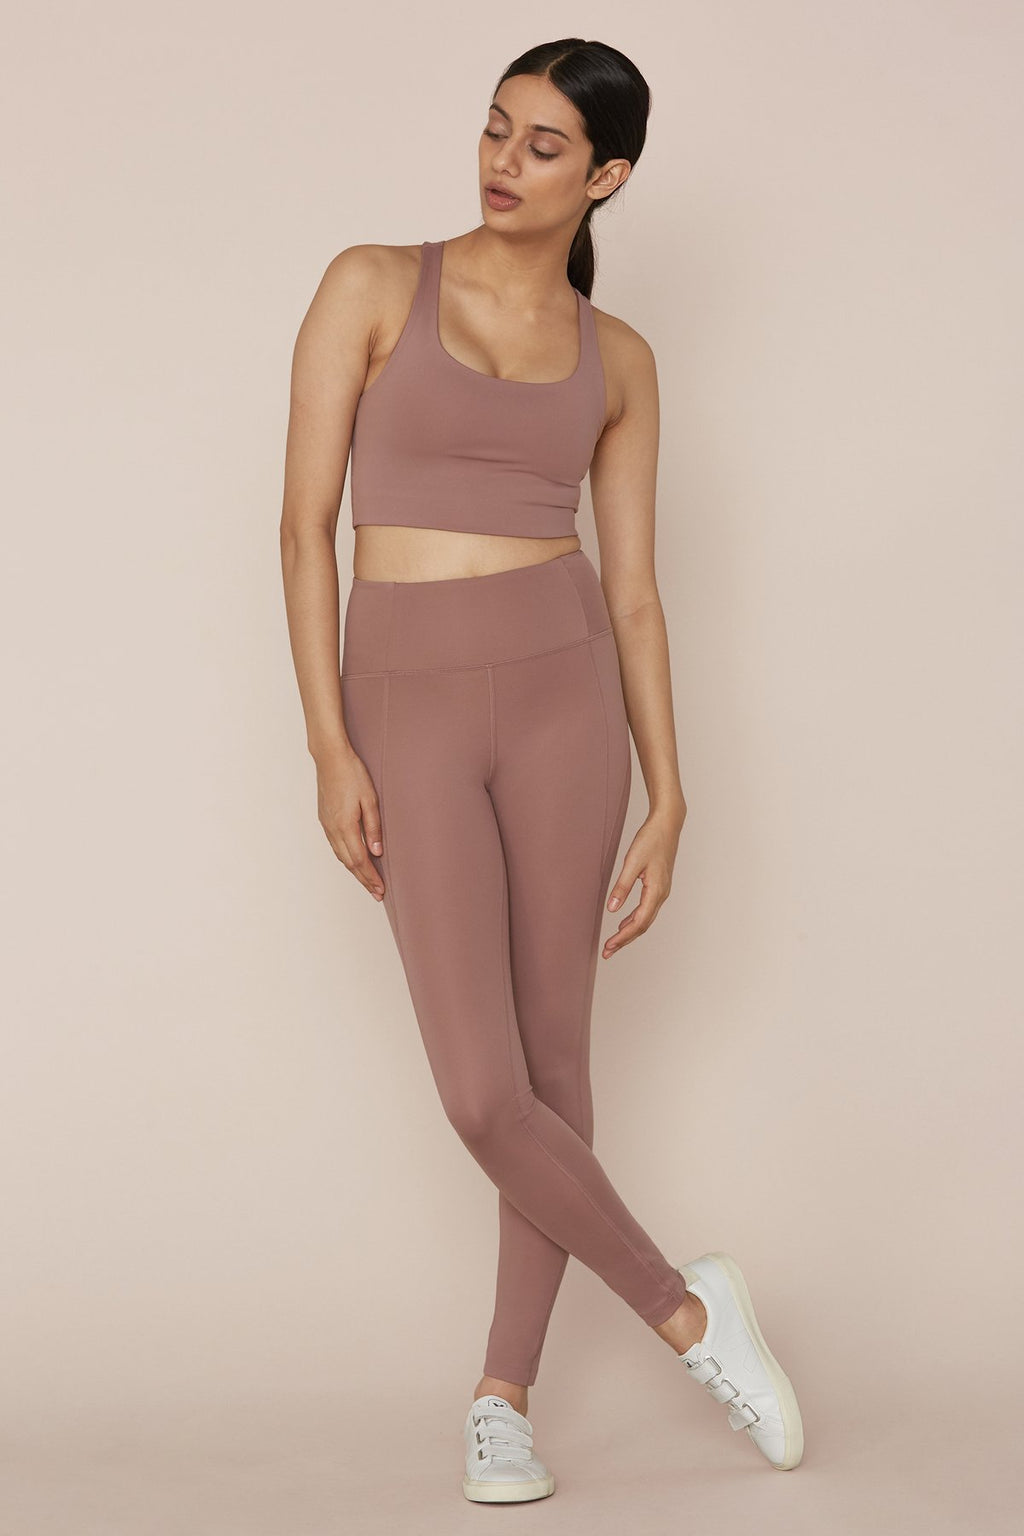 "COMPRESSIVE HIGH-RISE LEGGINGS 28.5"" - ROSE QUARTZ"